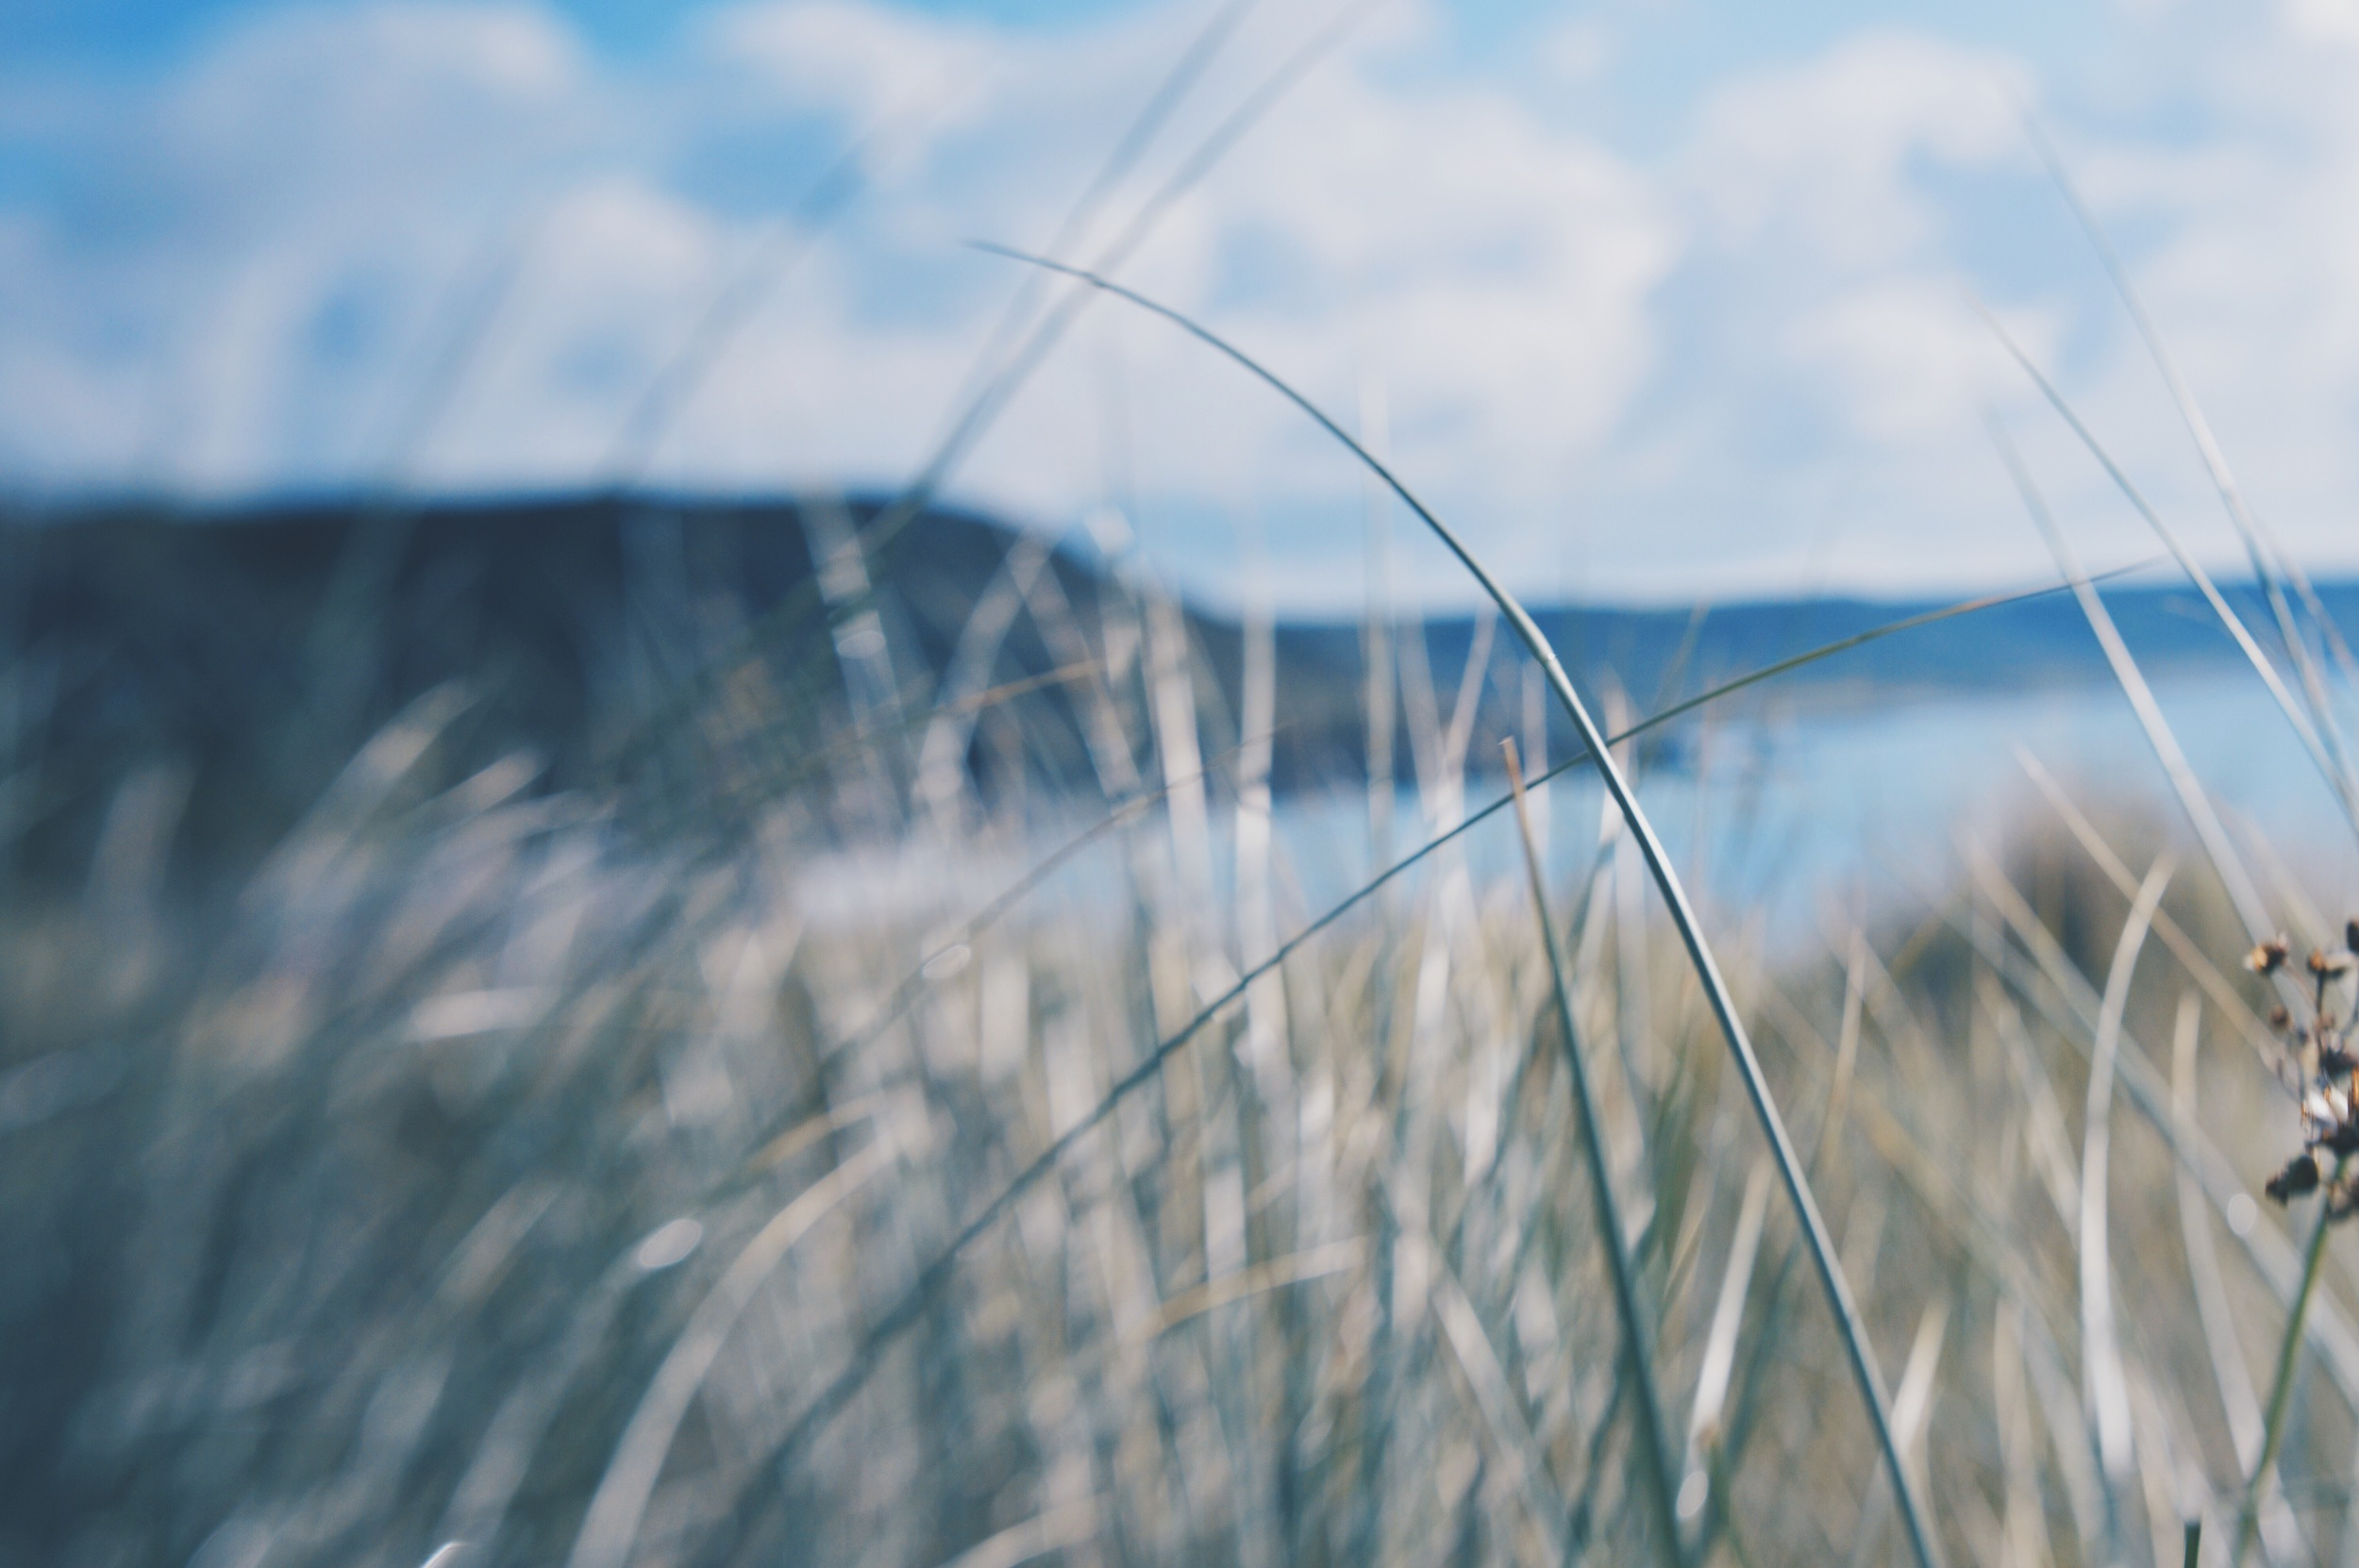 Lensbaby and Grass make a good combo.